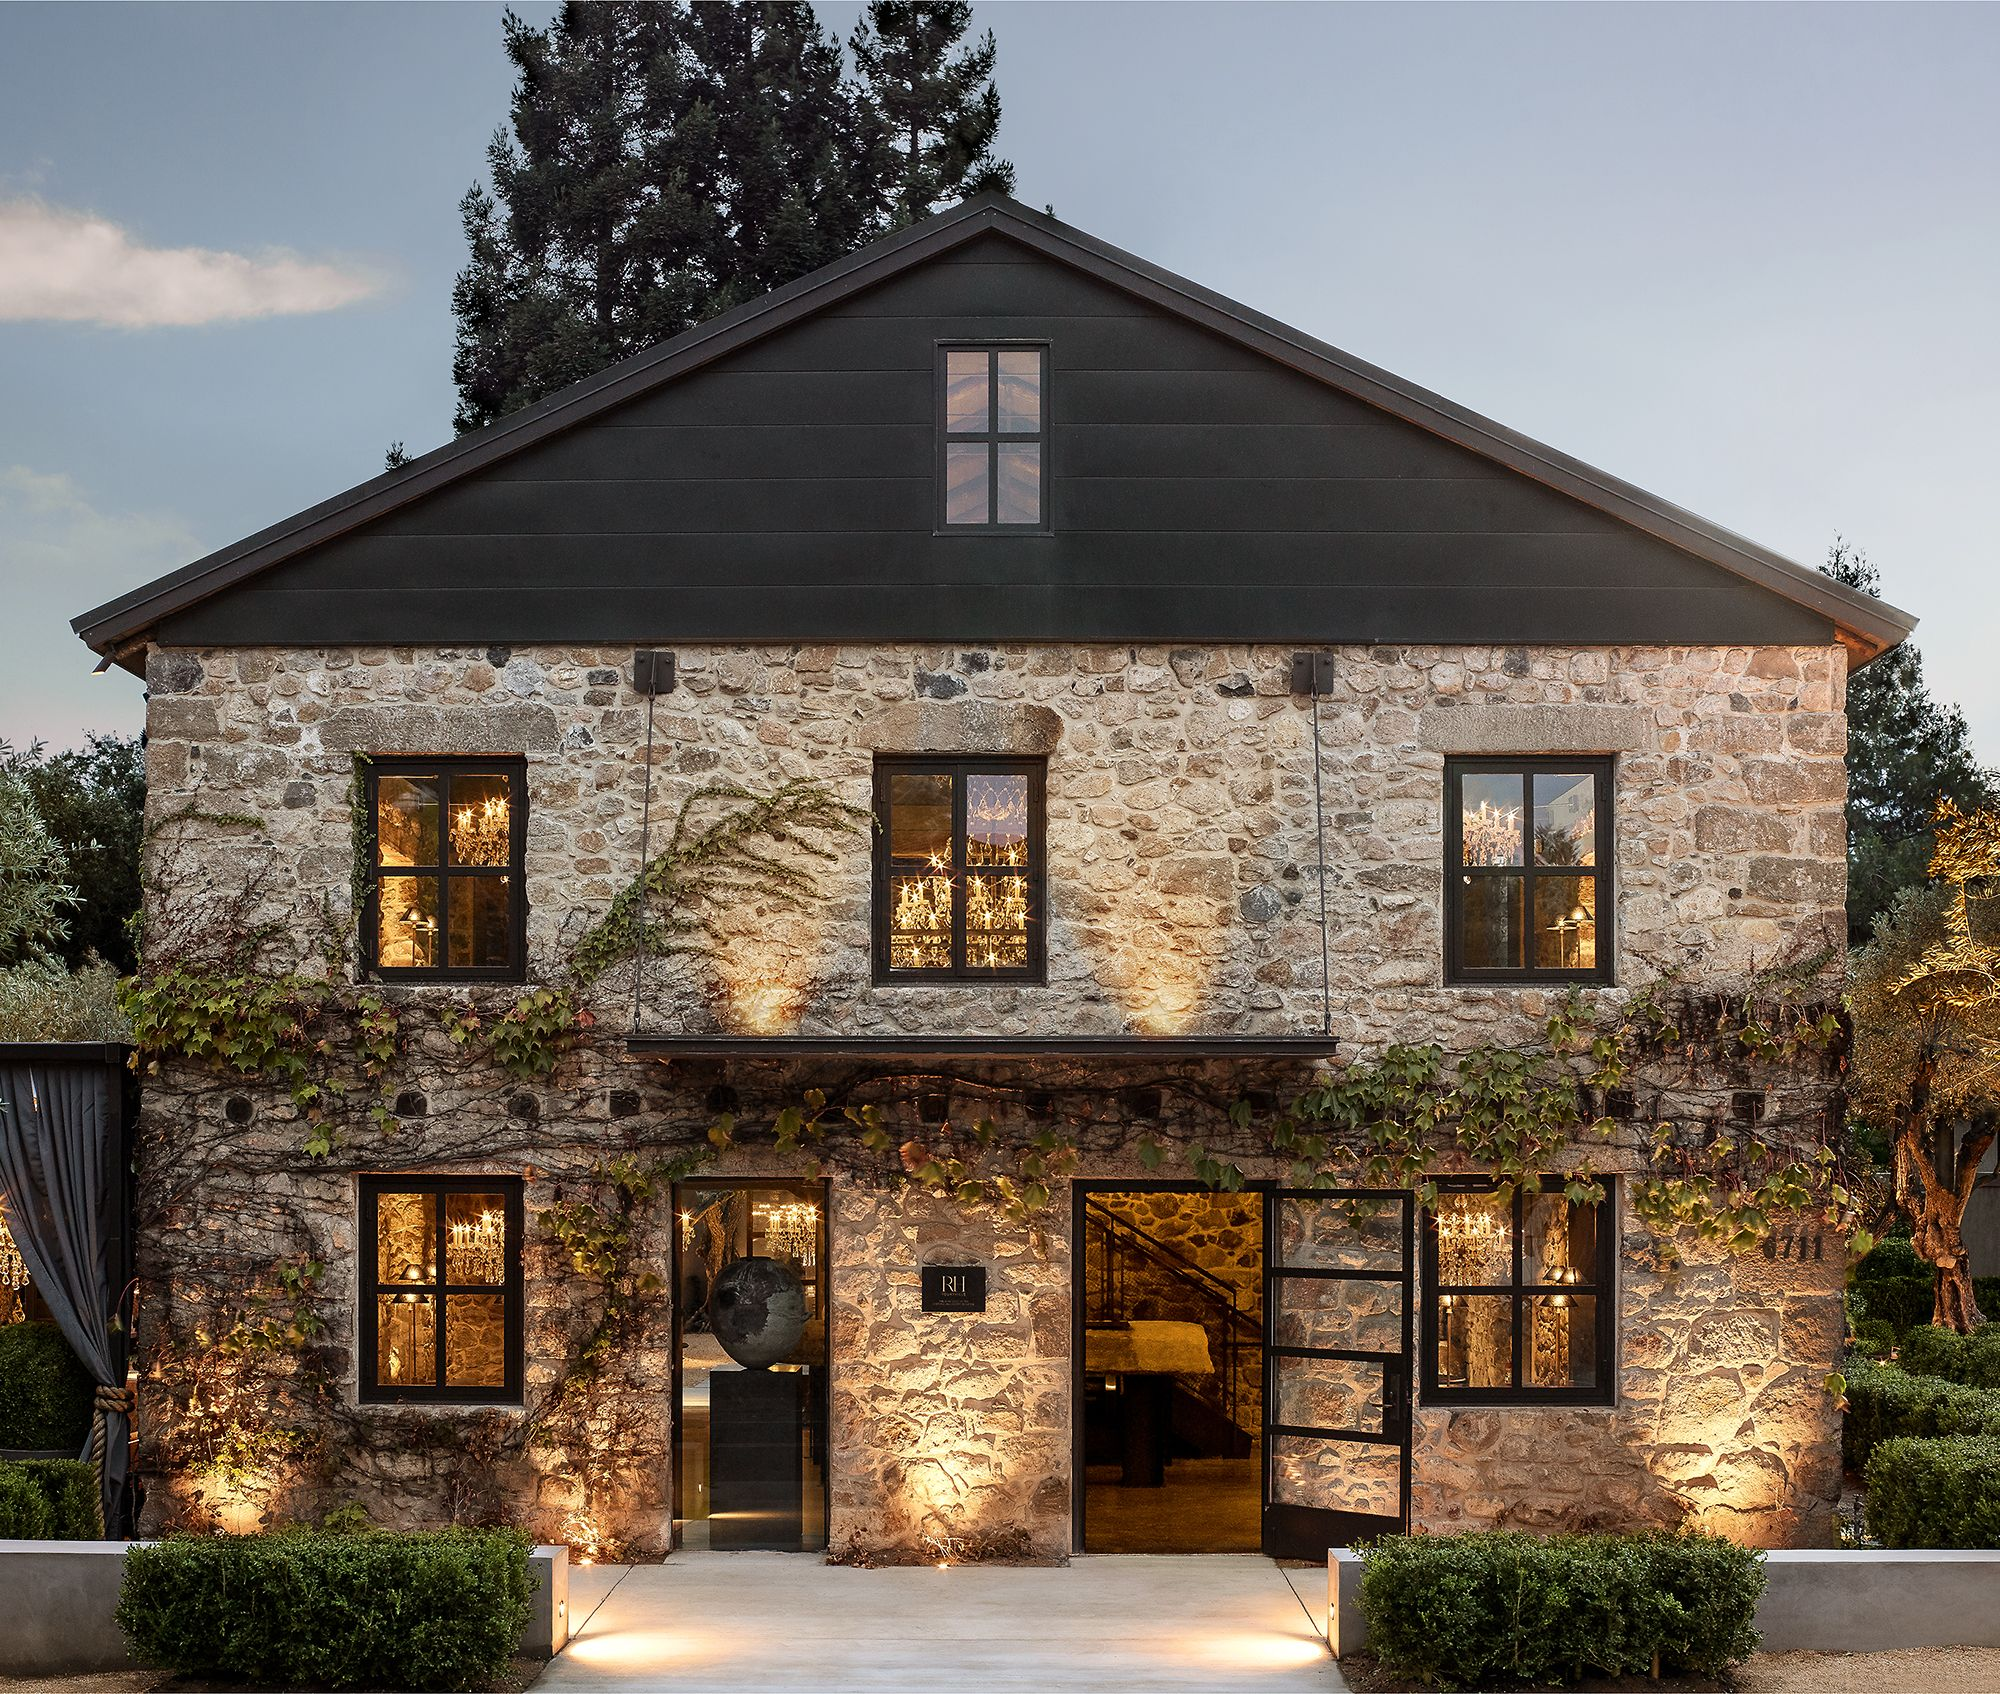 Restoration Hardware's Napa Valley Compound Is Its Most Luxe ... on philadelphia house plans, tuscan house plans, naples house plans, huntington beach house plans, st. helena house plans, bordeaux house plans, miami house plans, texas hill country house plans, hawaii house plans, wine country house plans, lafayette house plans, california house plans, scottsdale house plans, nantucket house plans, newport house plans, australian house plans, manhattan beach house plans, france house plans, orlando house plans, central coast house plans,